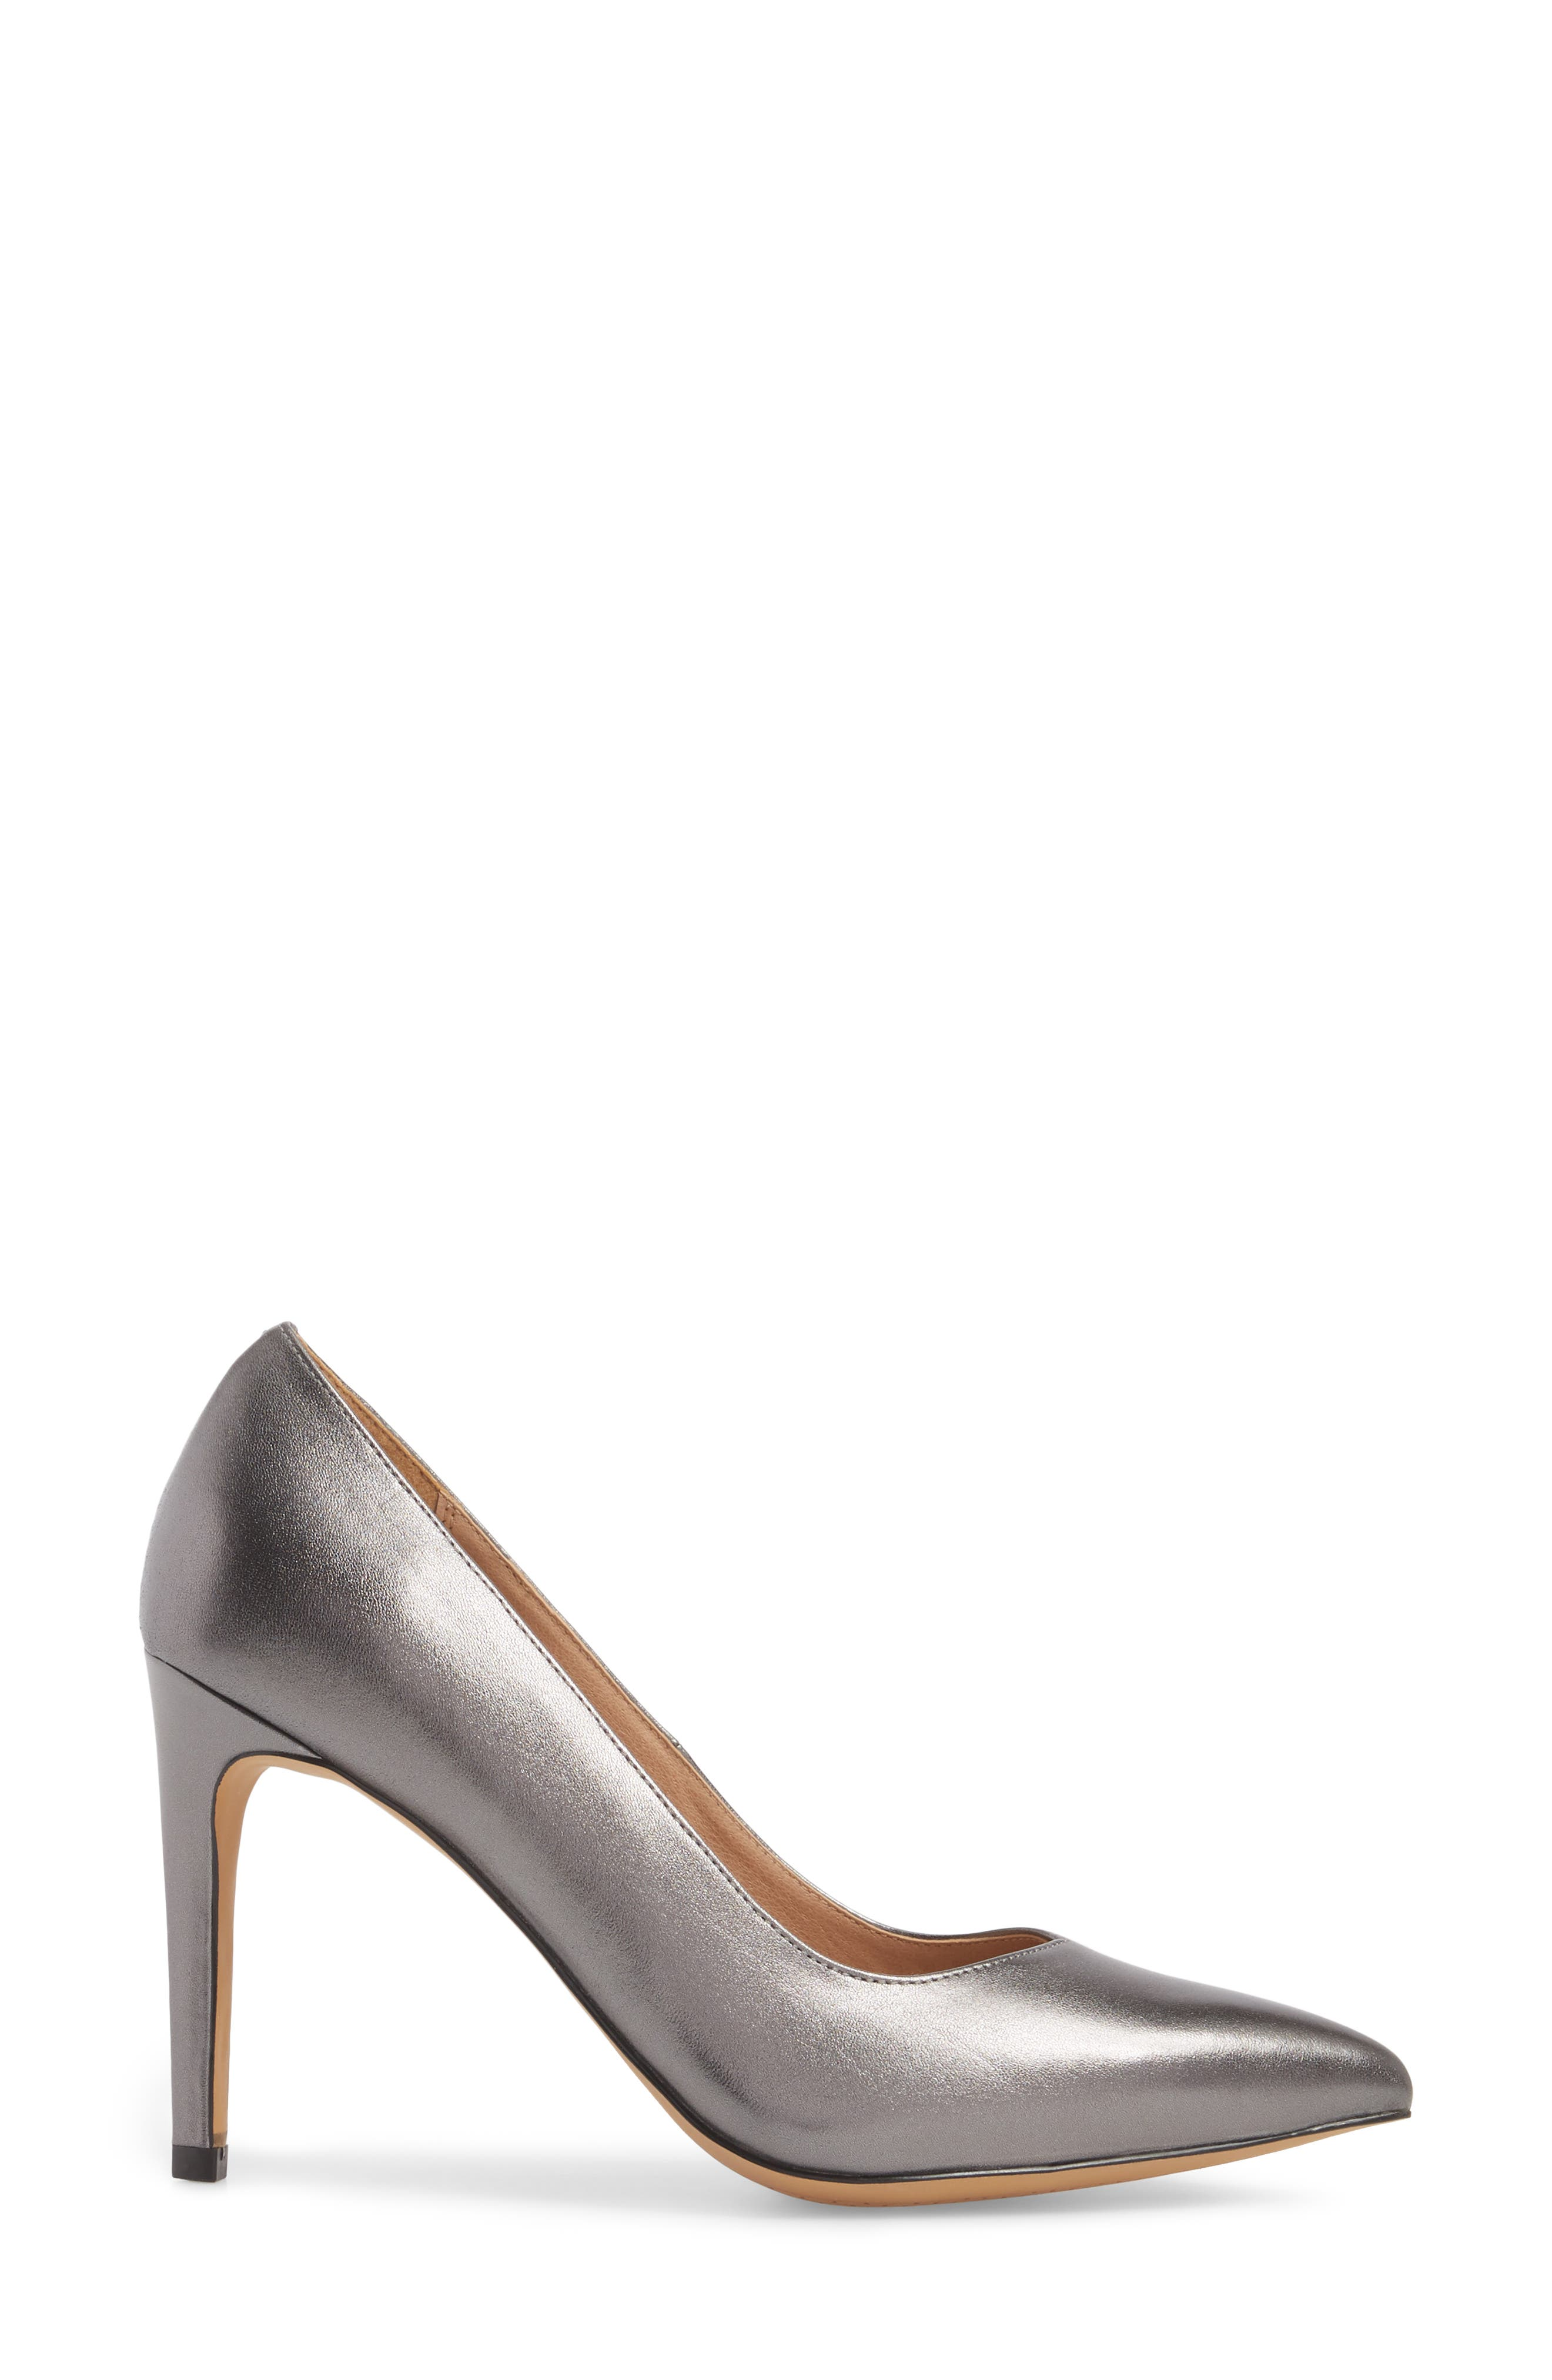 Palma Pointy Toe Pump,                             Alternate thumbnail 3, color,                             GUNMETAL LEATHER